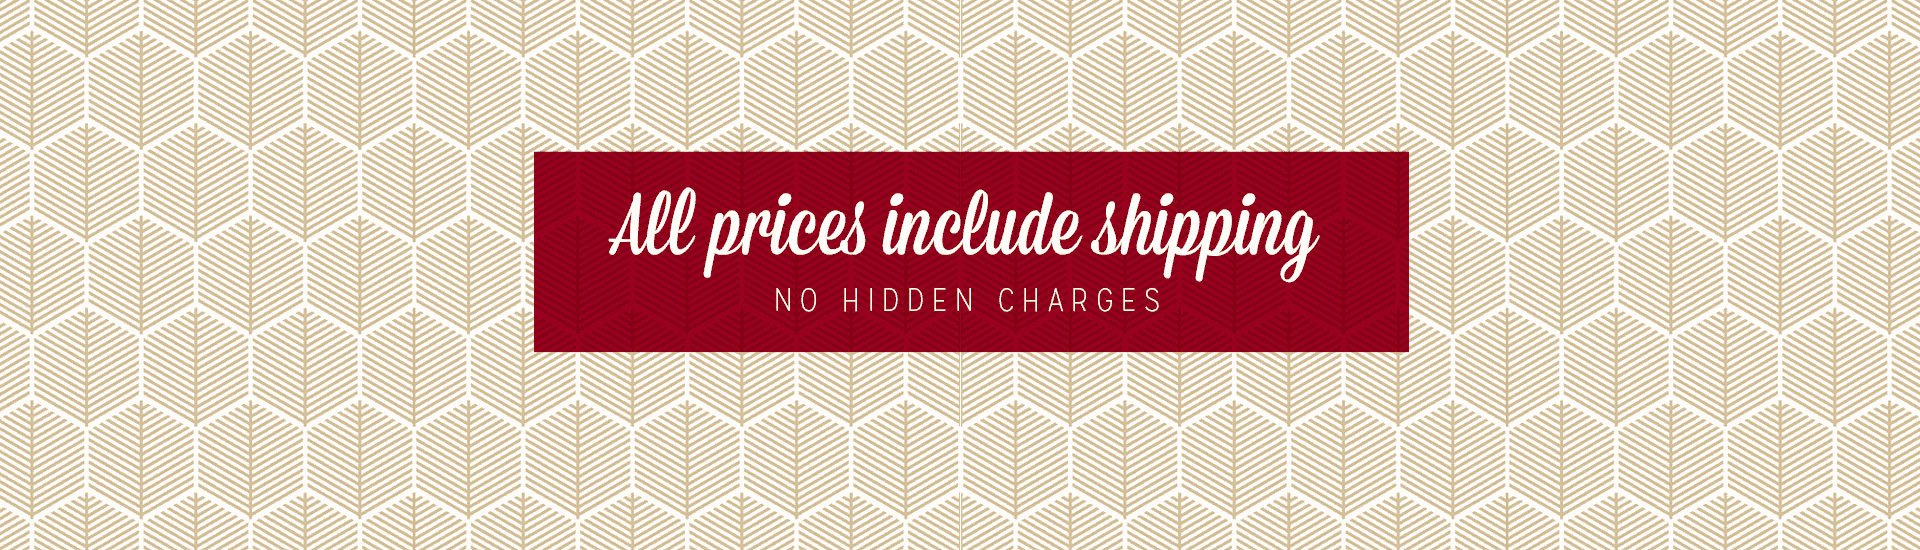 All Prices Include Ground Shipping! No Surprises!